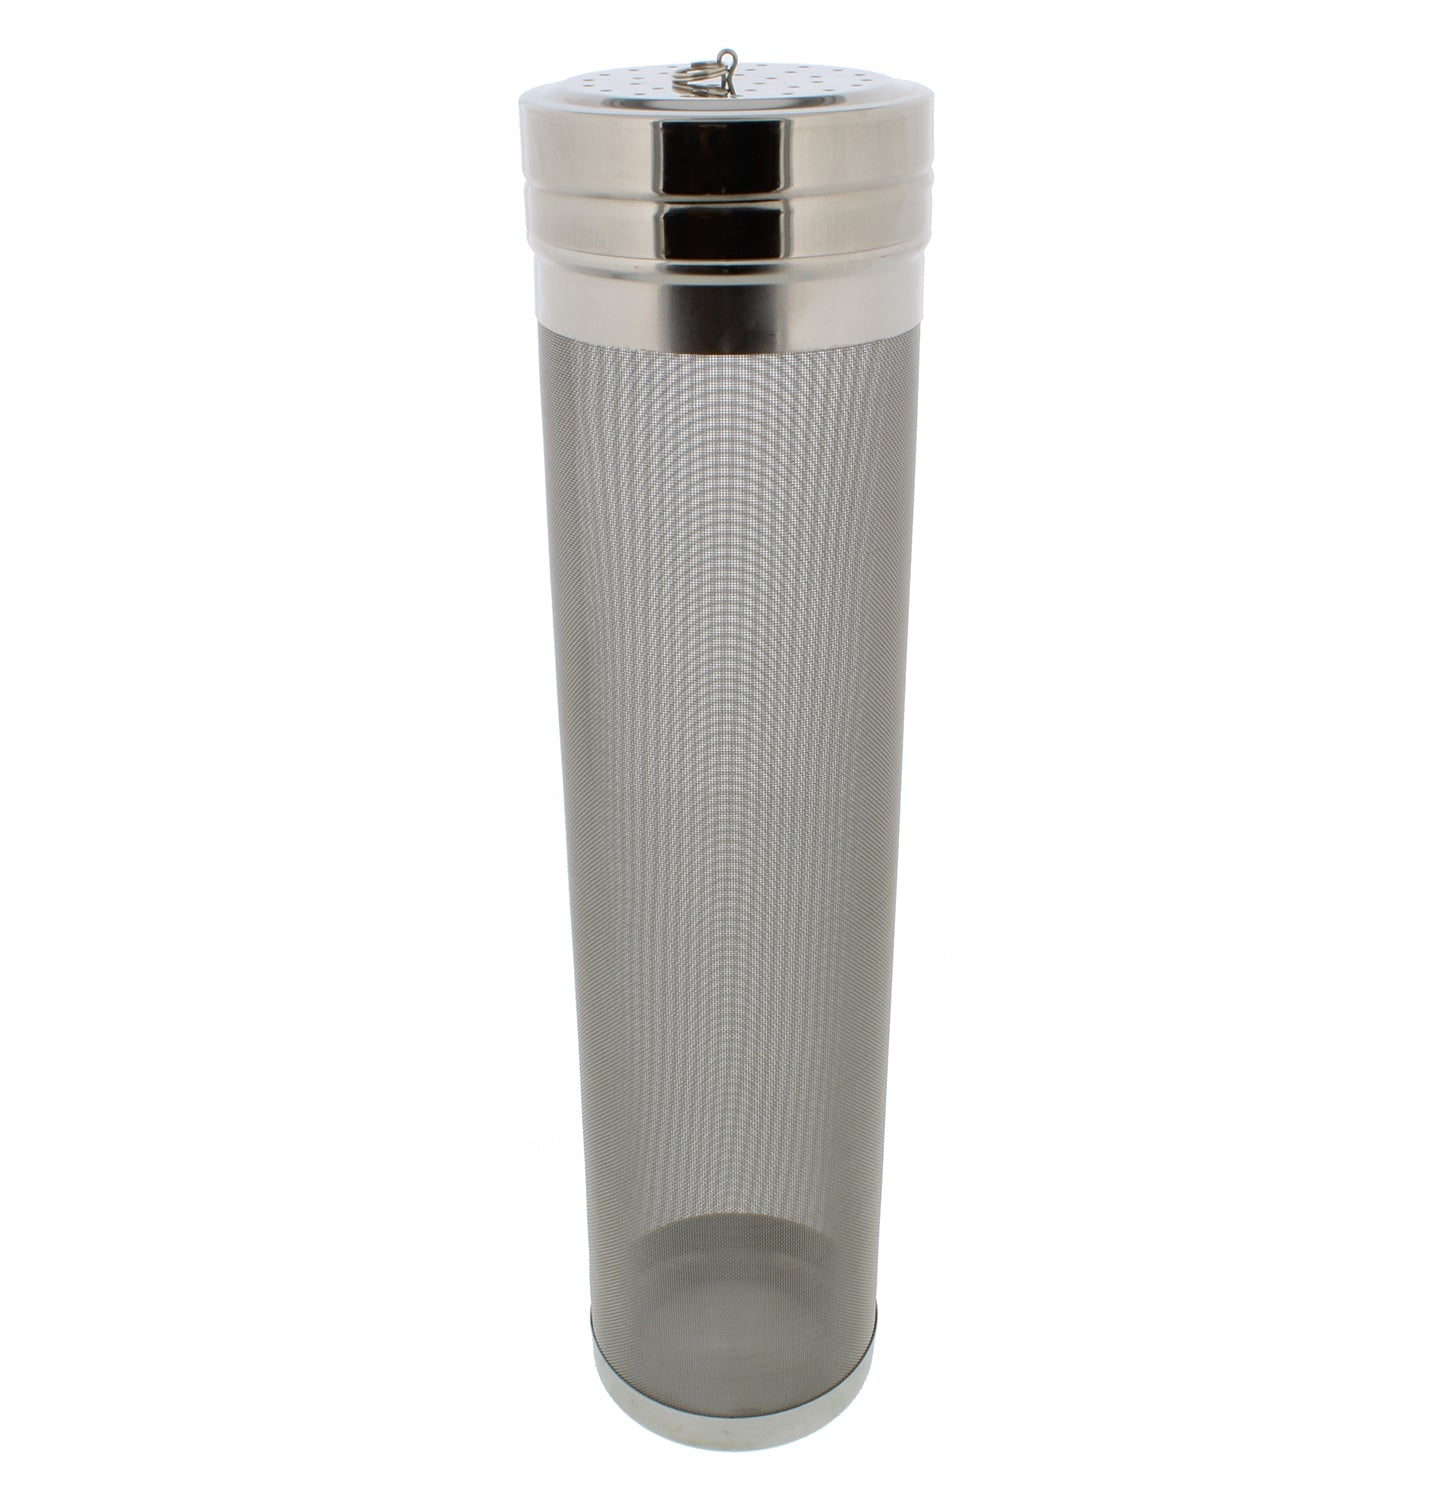 Stainless Steel 300 Micron Brewing Hopper Filter – Dry Hops